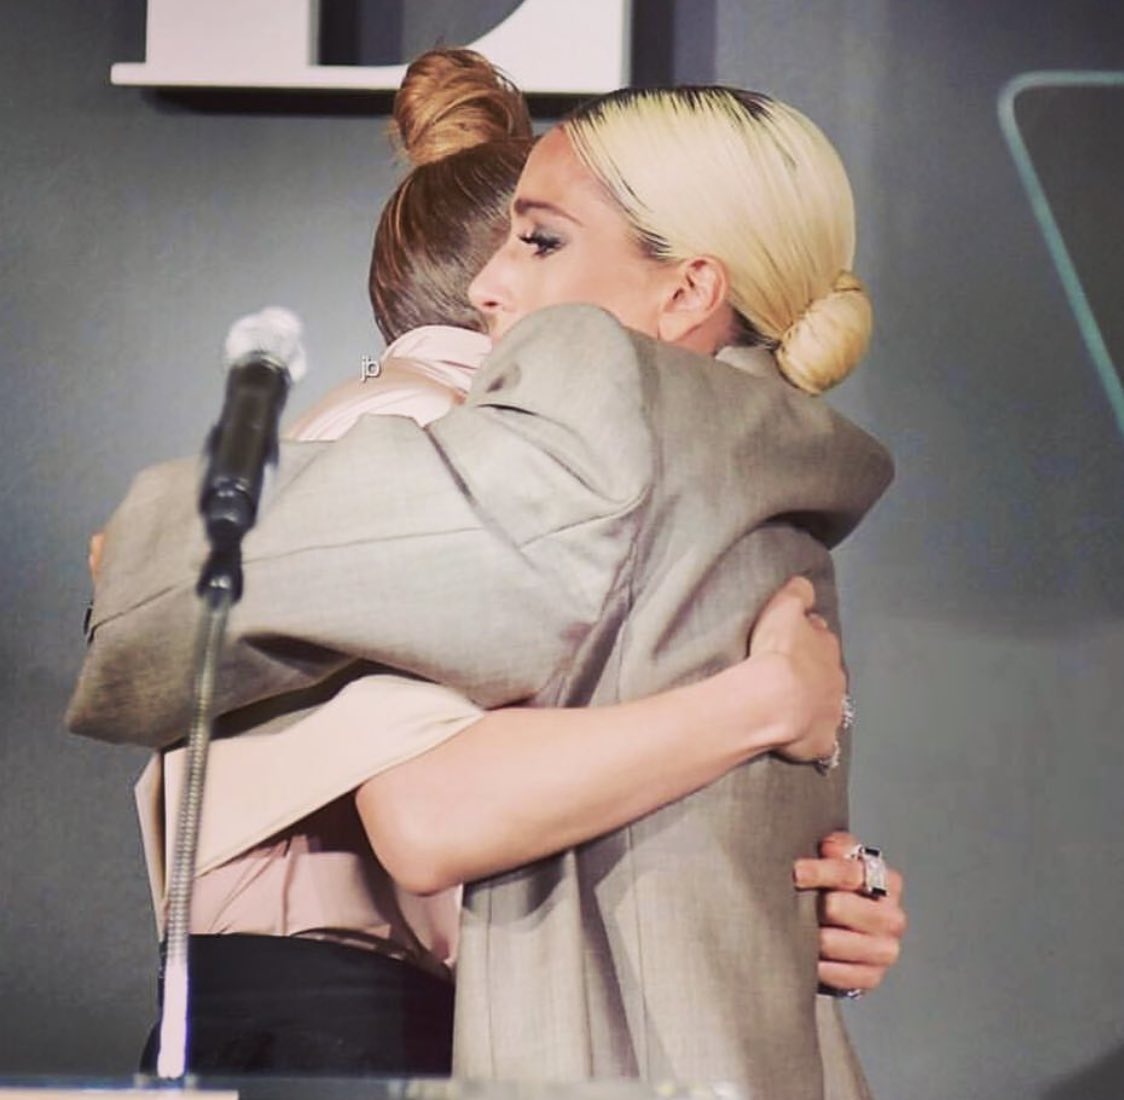 Women supporting women!! Love this moment of me giving beautiful @ladygaga her award as she is honored at #ELLEWIH!! Such an inspiring night! So proud to be a part of this community of powerful artists and trailblazers!!! #strongertogether #astarisborn #secondact #limitless https://t.co/XhjJktWsak